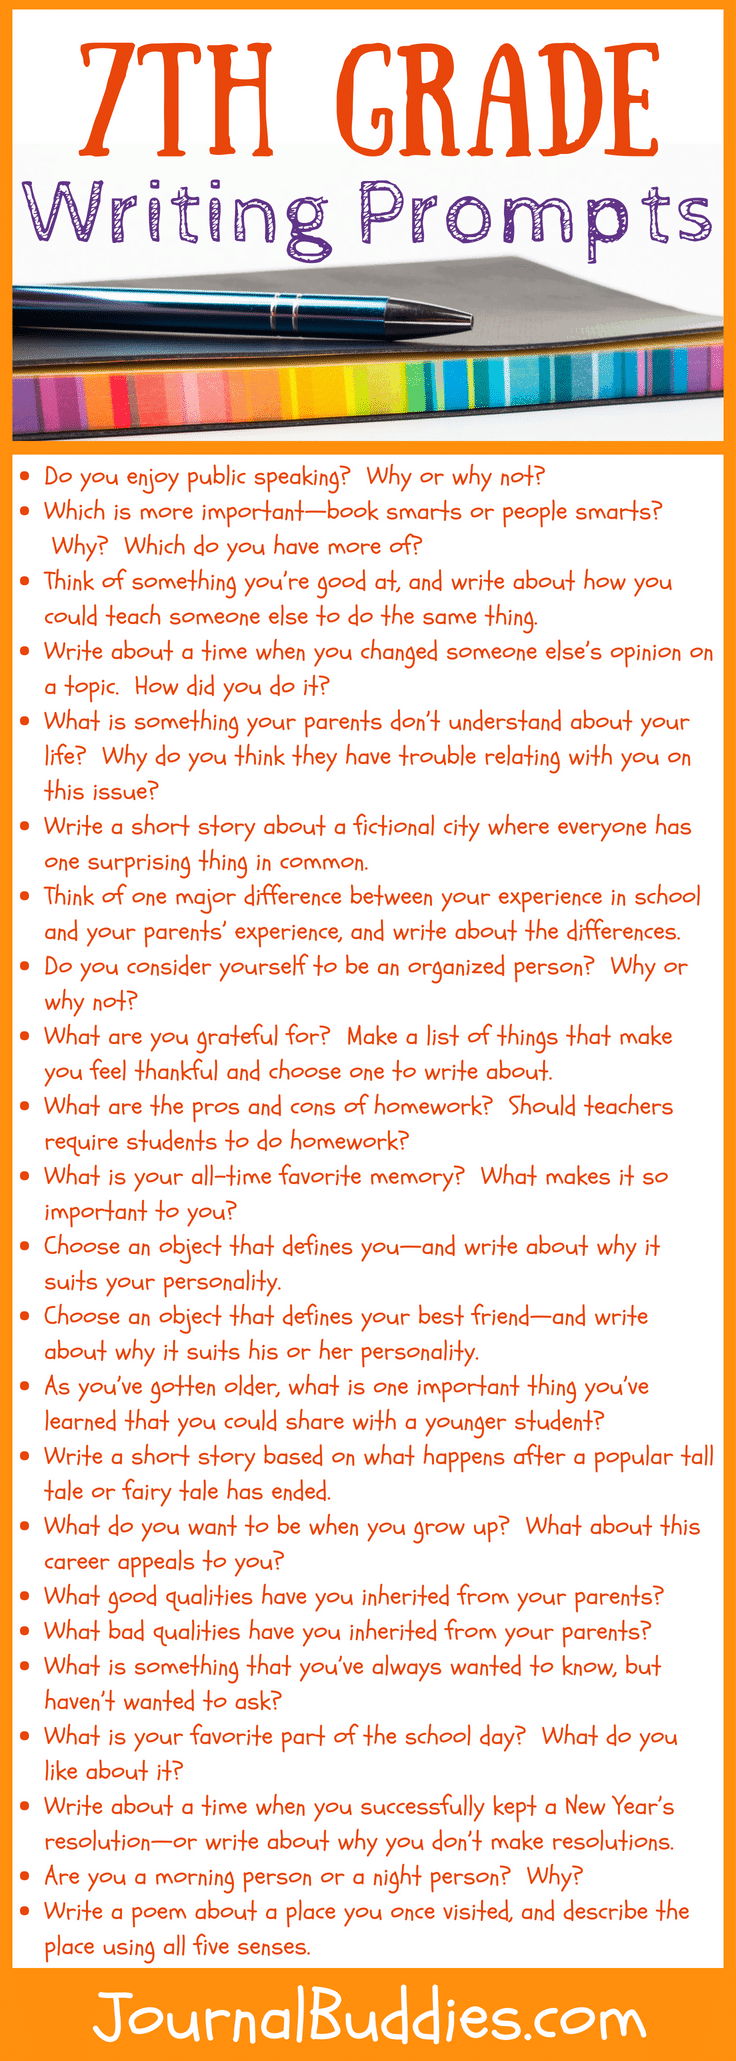 hight resolution of 7th Grade Writing Prompts: 32 New Ideas • JournalBuddies.com